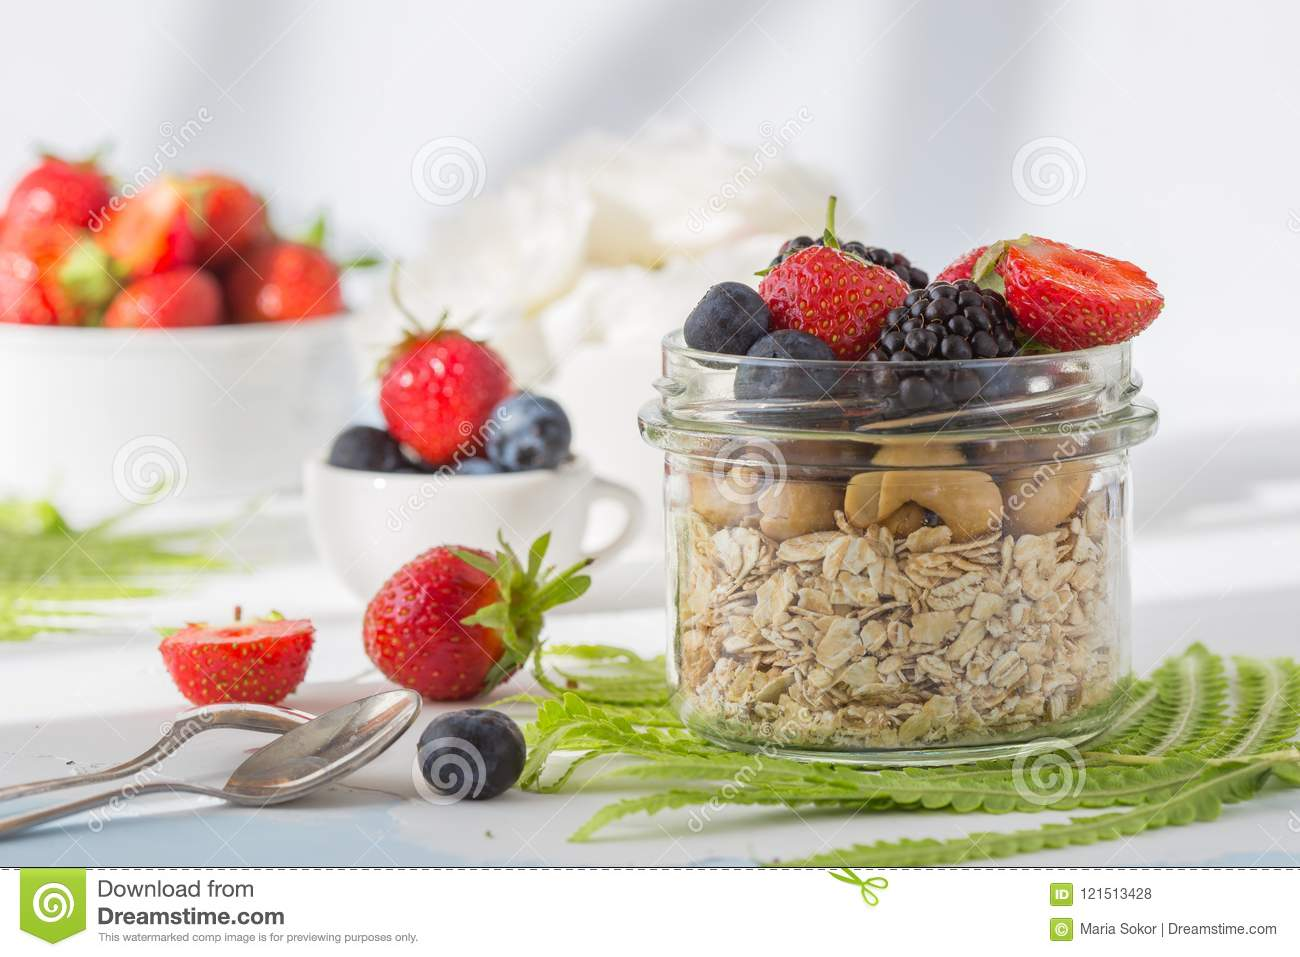 Healthy breakfast super food cereal concept with fresh fruit, granola, yoghurt, nuts and pollen grain, with foods high in protein,